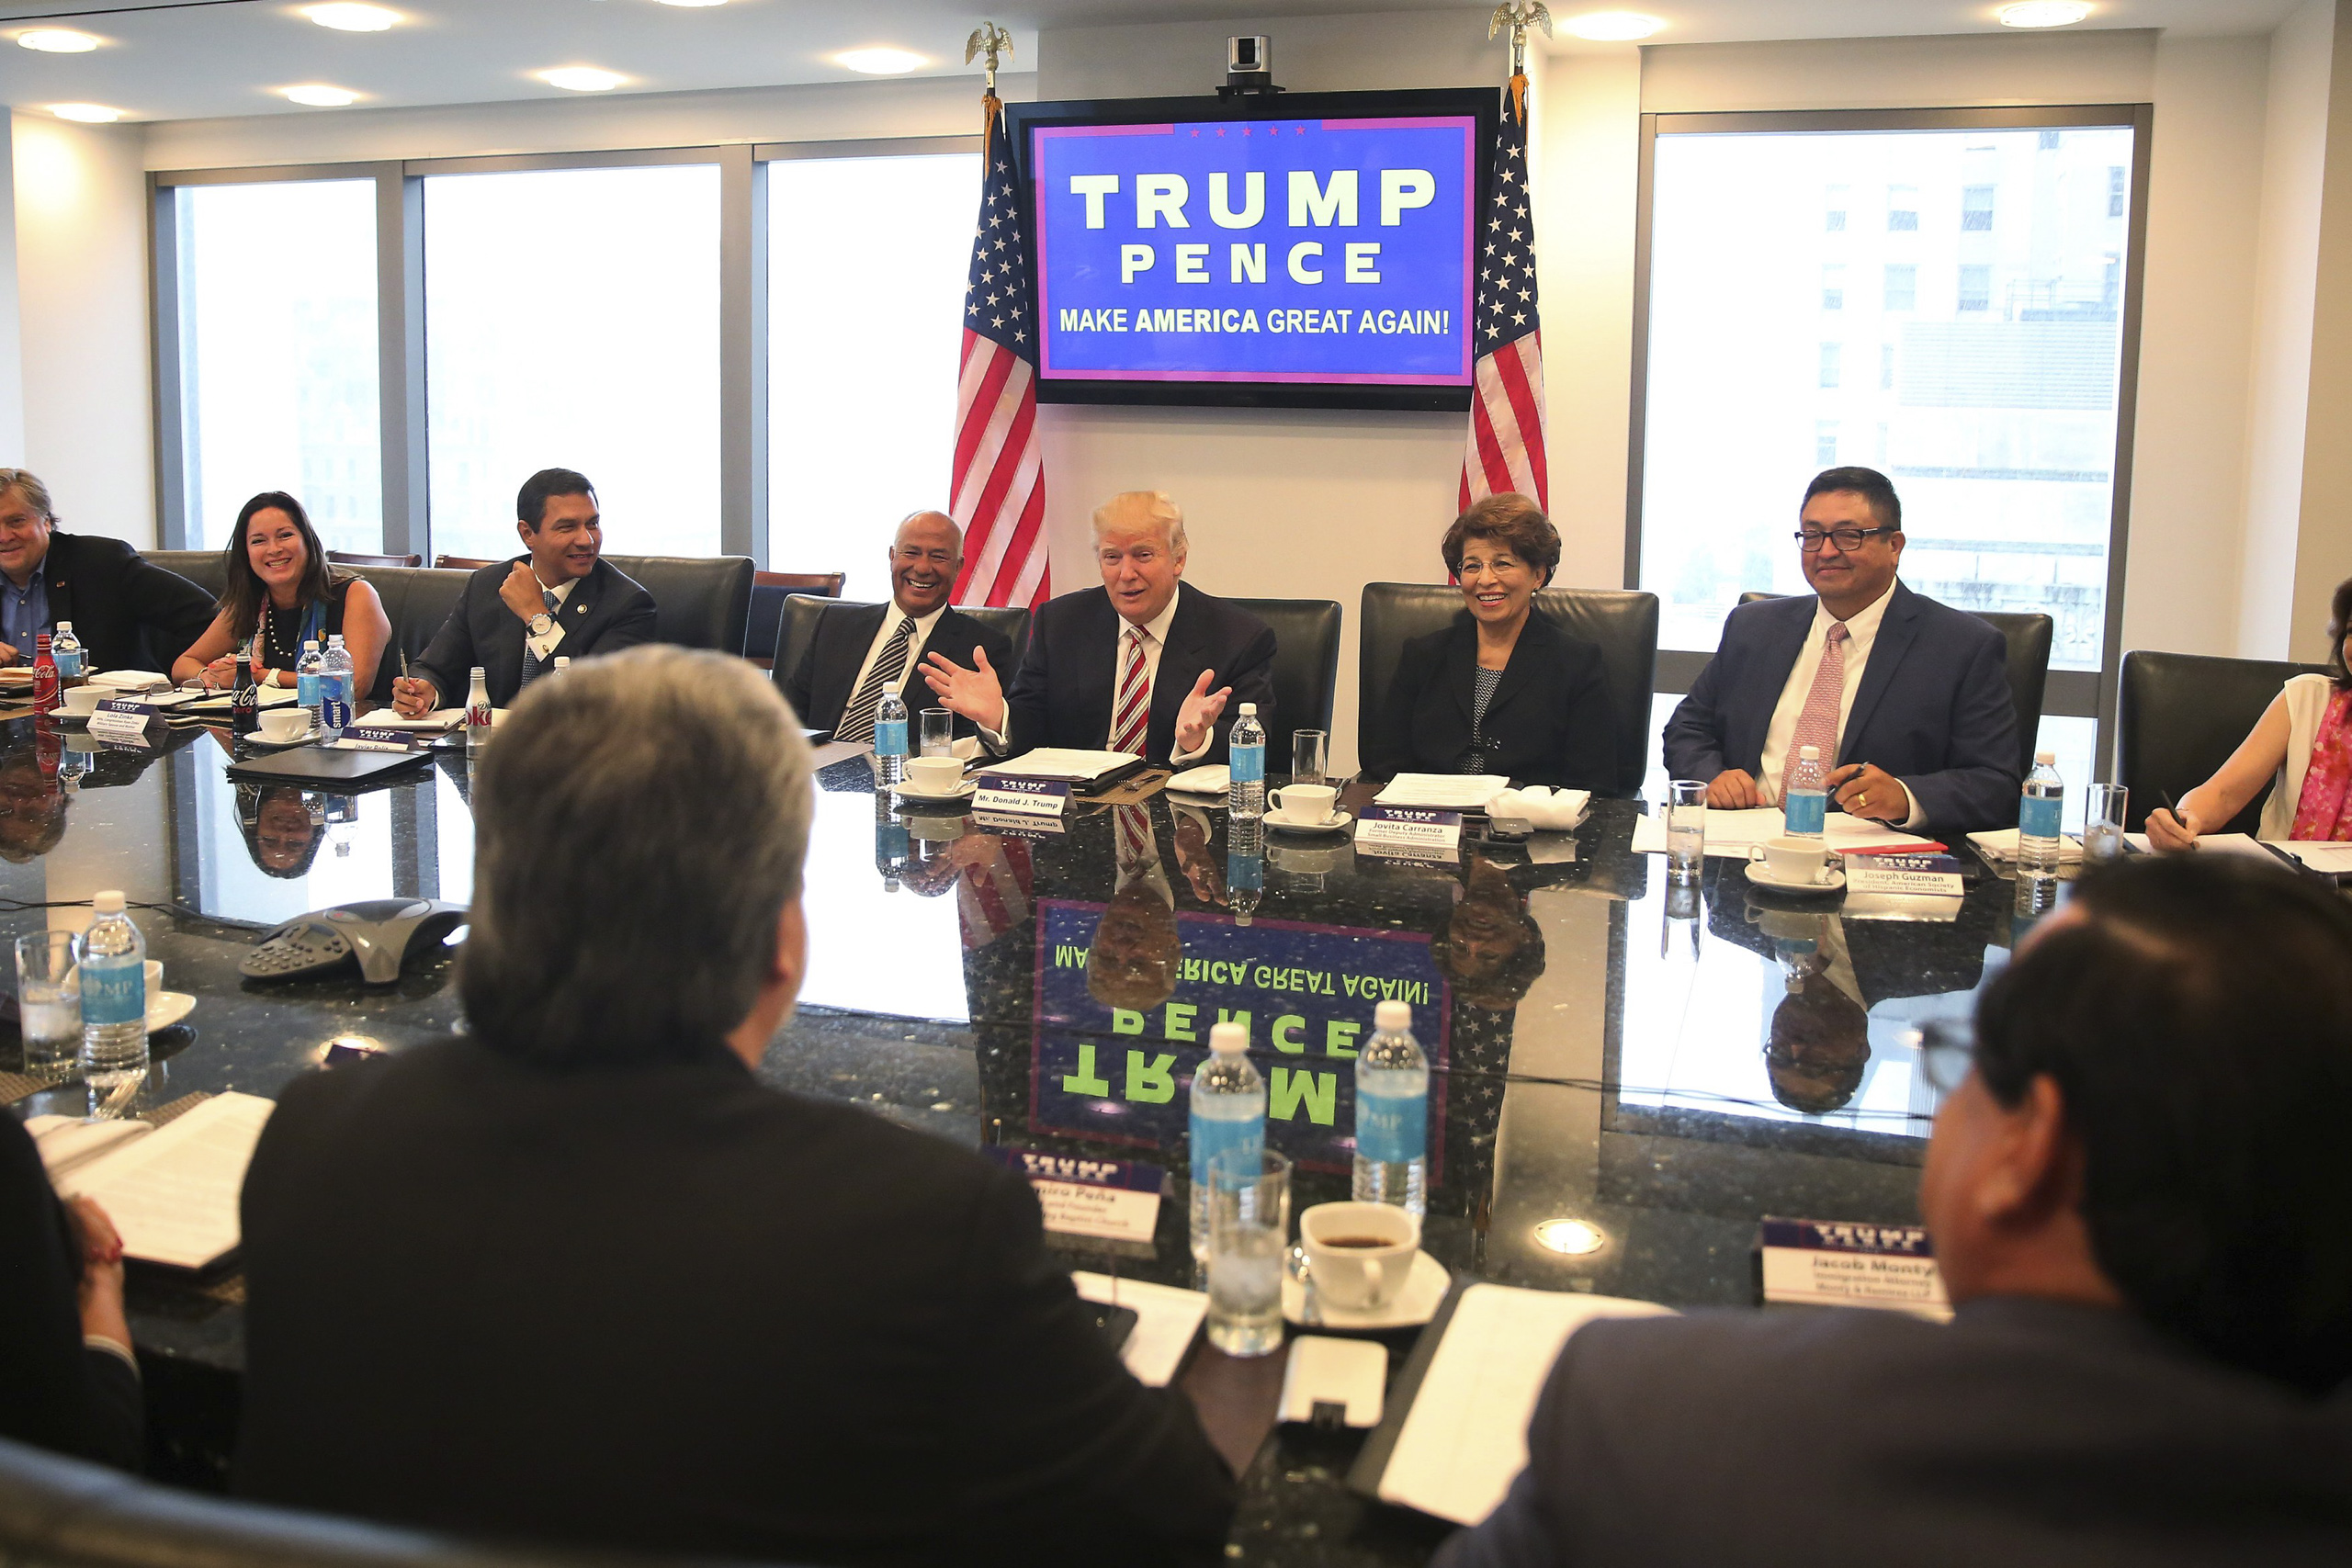 Republican presidential nominee Donald Trump speaks during a meeting with his Hispanic Advisory Council at Trump Tower in the Manhattan borough of New York City on Aug. 20, 2016.